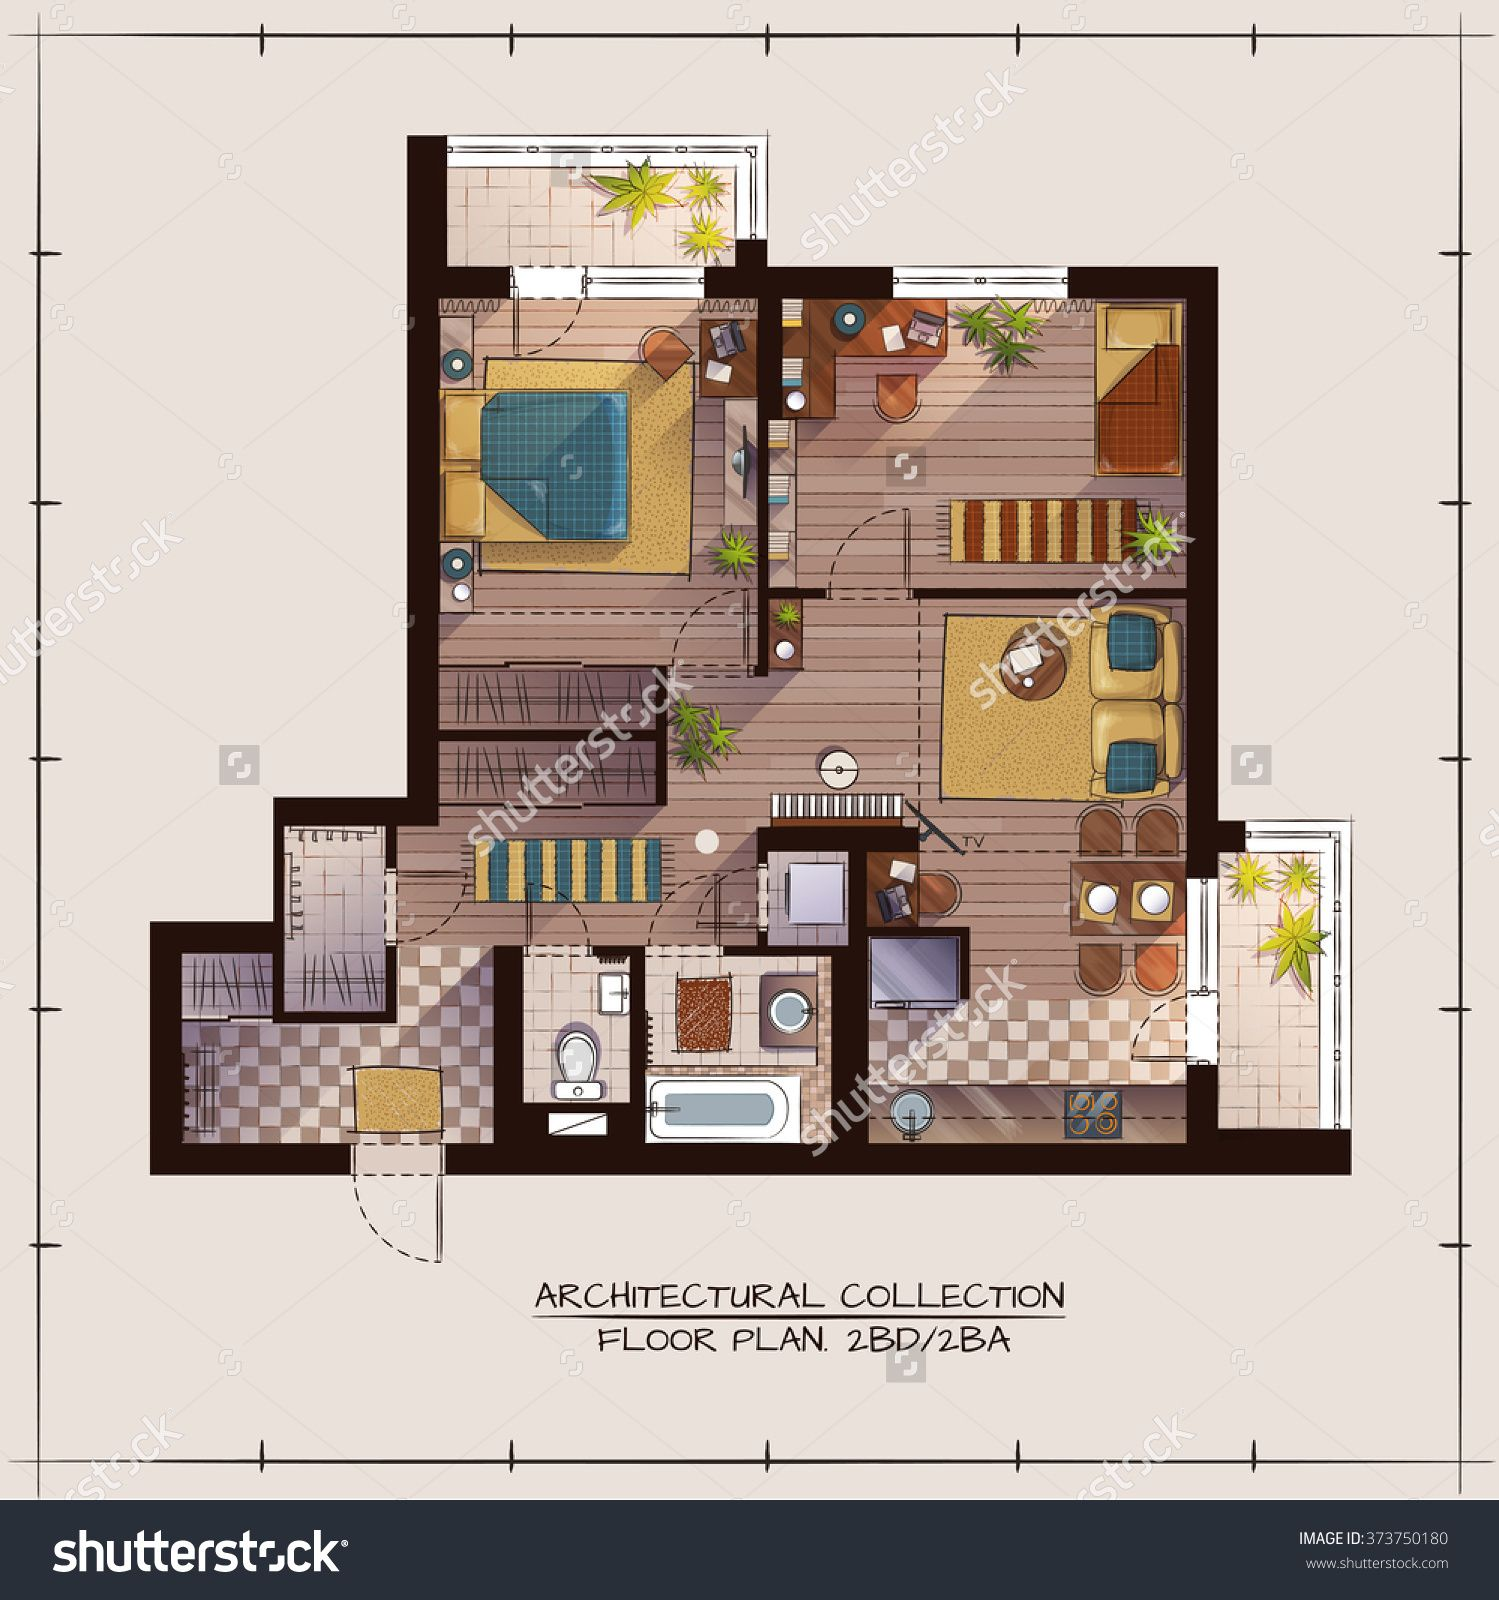 Architectural Color Floor PlanTwo Bedrooms Apartment Stock Vector